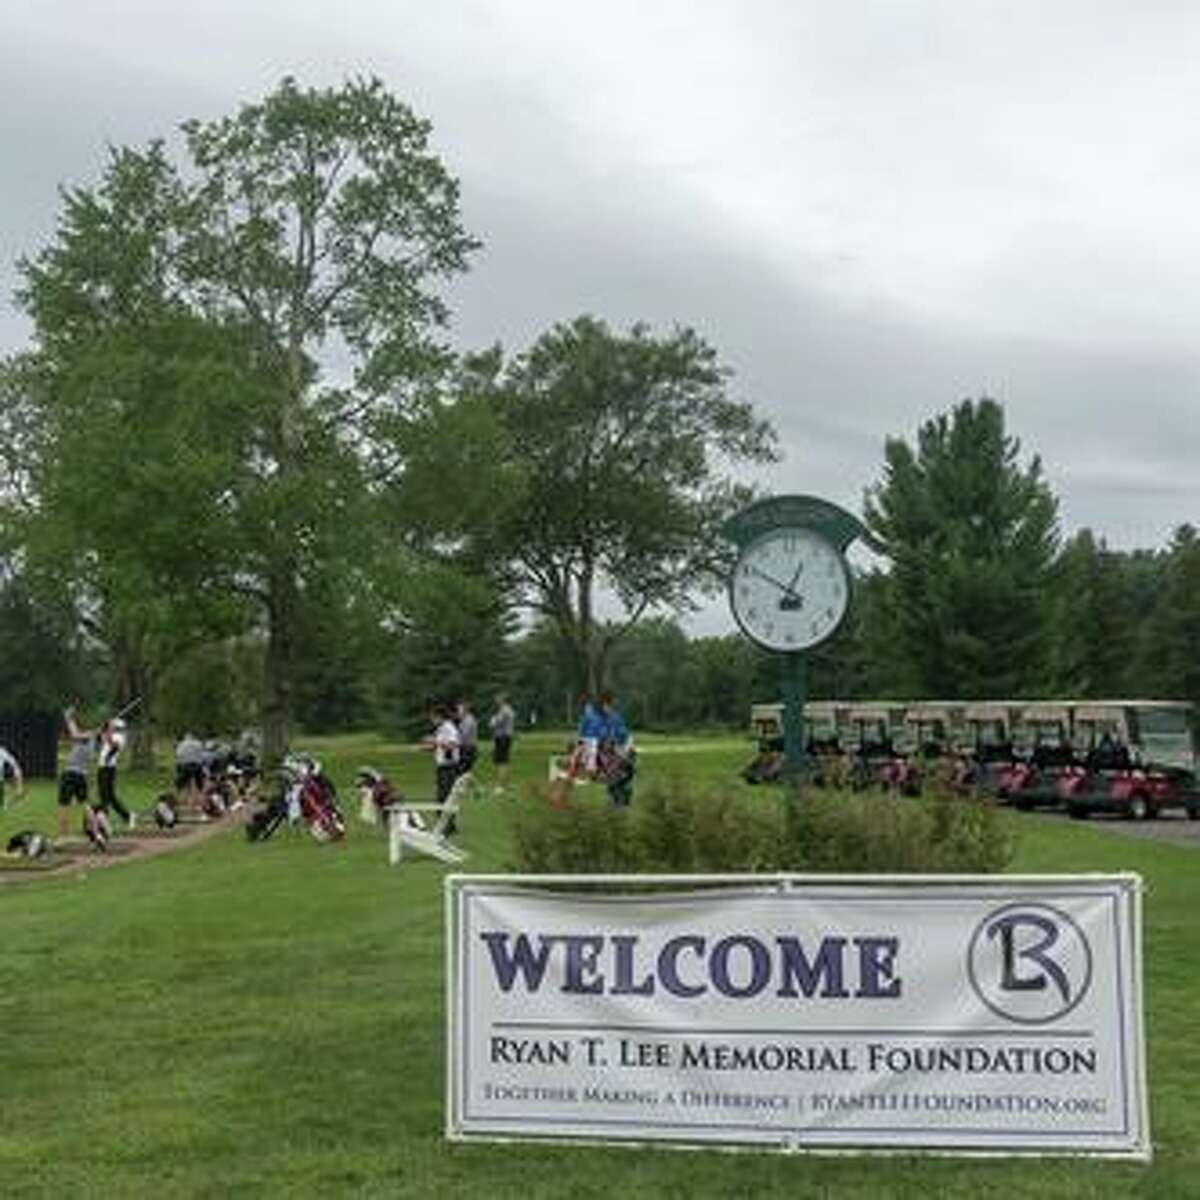 The Ryan Lee Collegiate tournament will be held Sept. 7-8, 2019 at Hop Meadow Country Club in Simsbury.